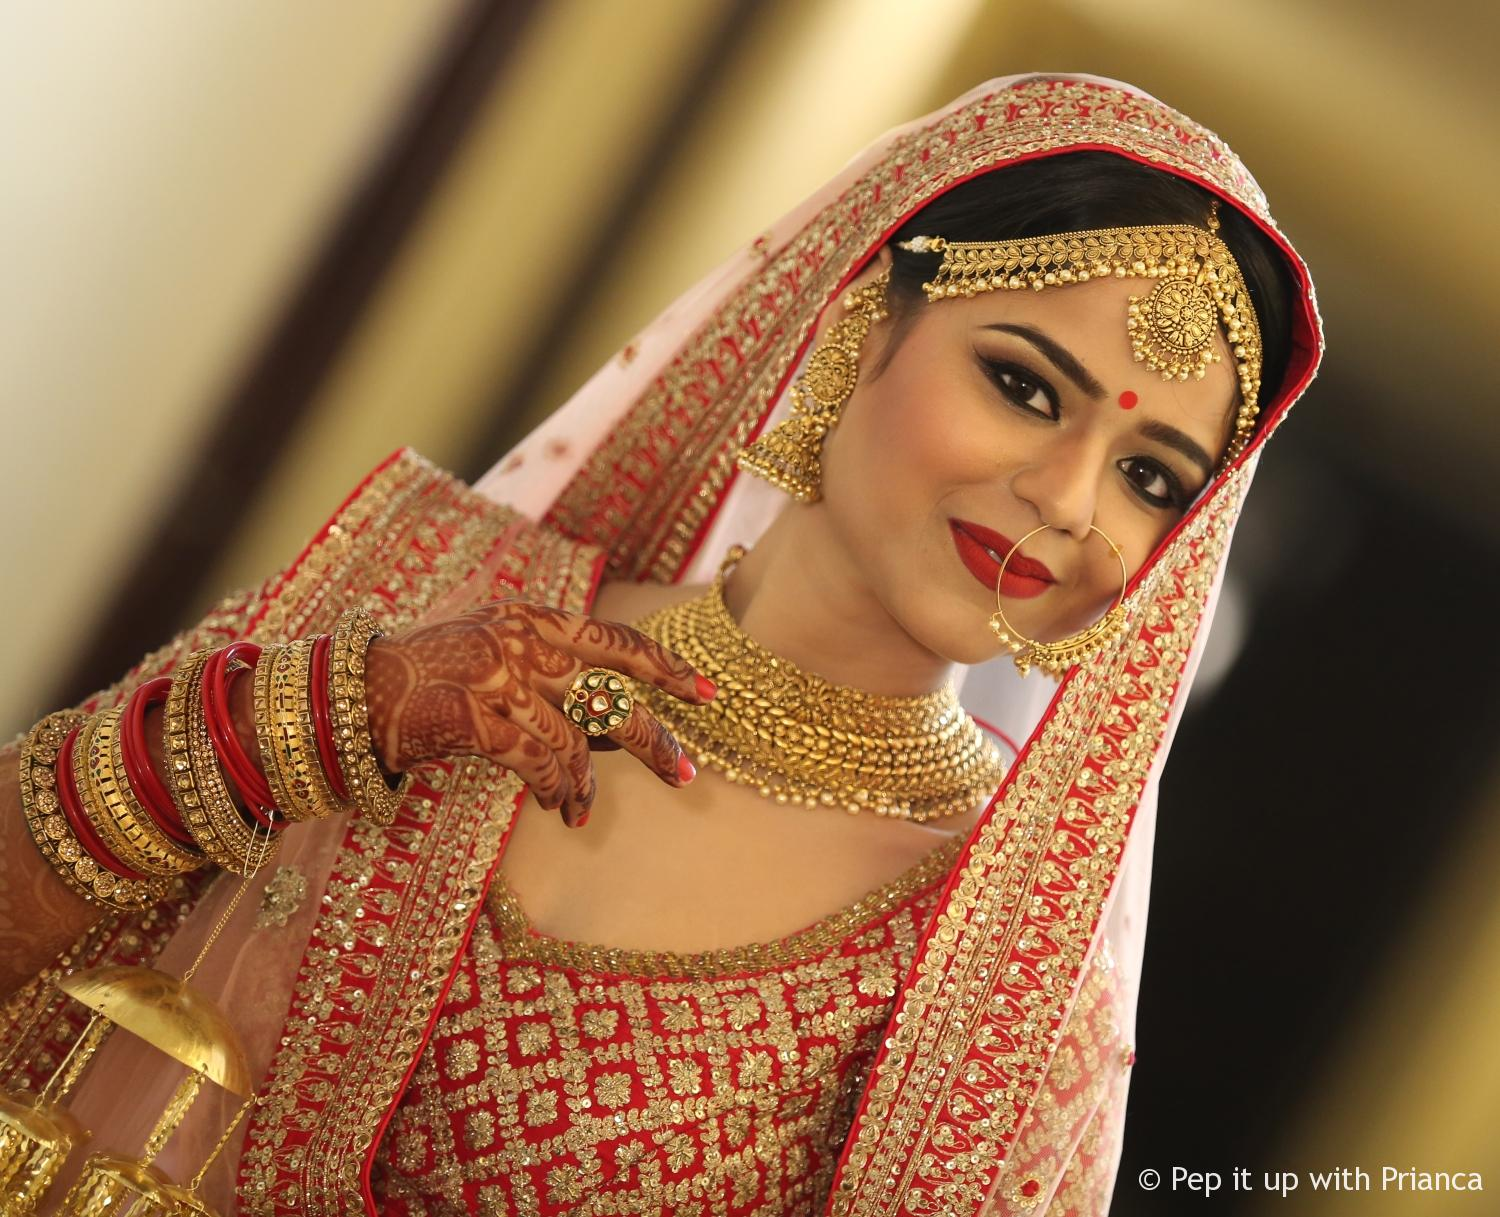 Bridal Makeup - Meet Tarun Kapoor : Best Celebrity and Professional Make-up artist in North India